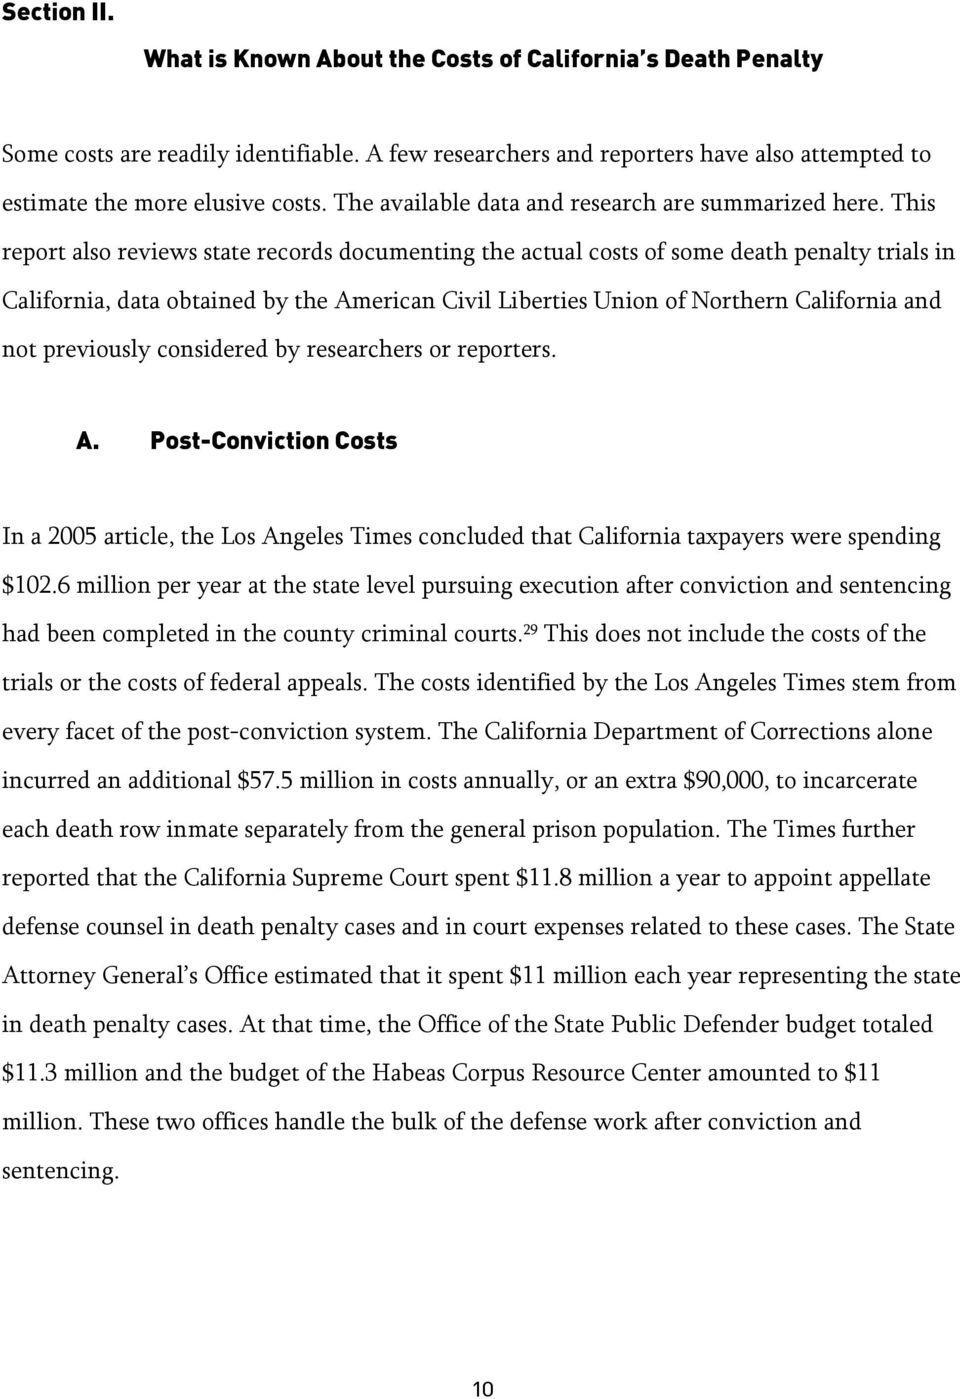 This report also reviews state records documenting the actual costs of some death penalty trials in California, data obtained by the American Civil Liberties Union of Northern California and not